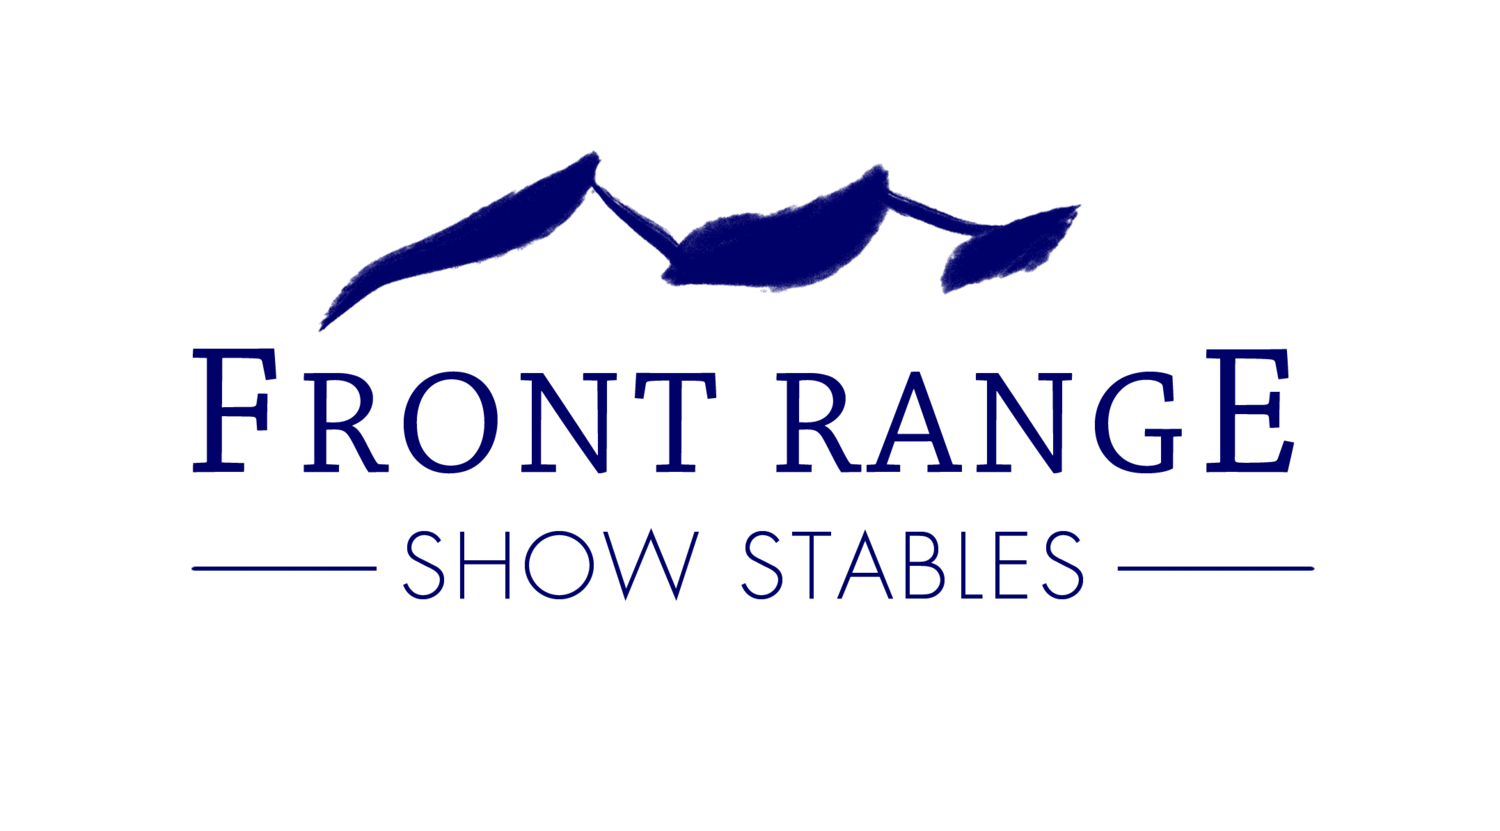 Front Range Show Stables